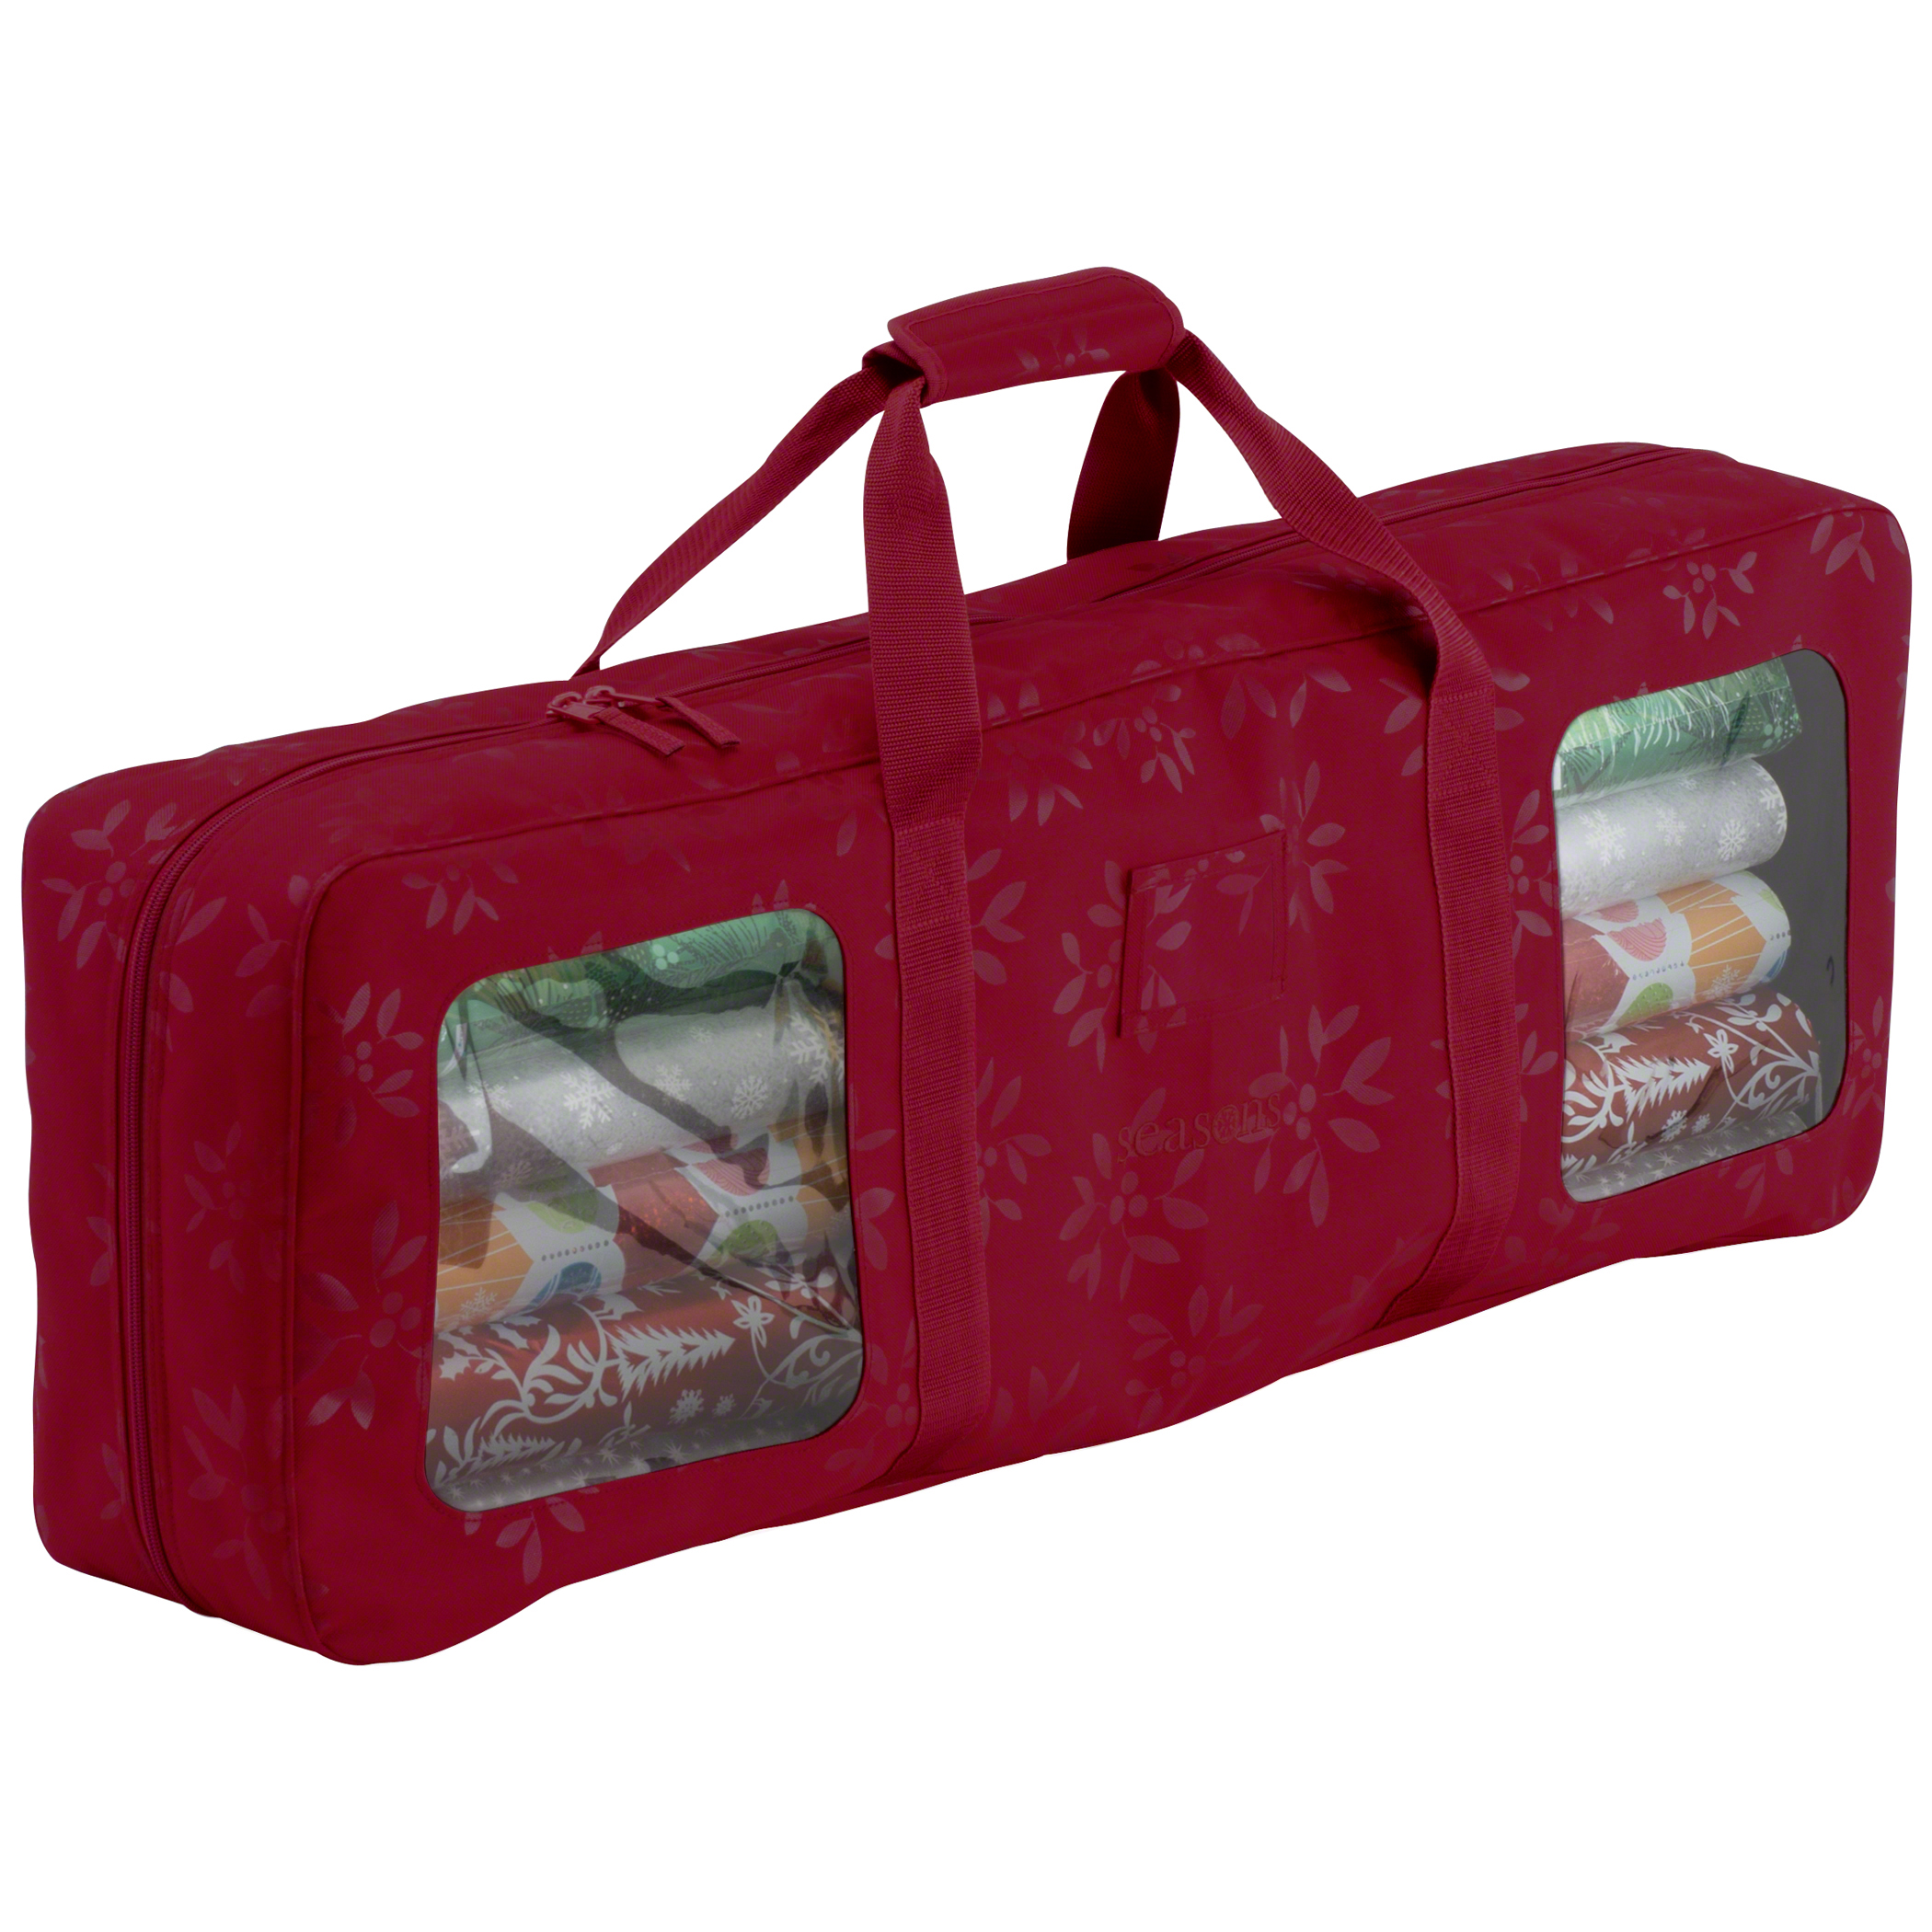 Classic Accessories Seasons Wrapping Supplies Organizer & Storage Duffel - Heavy-Duty Holiday Storage